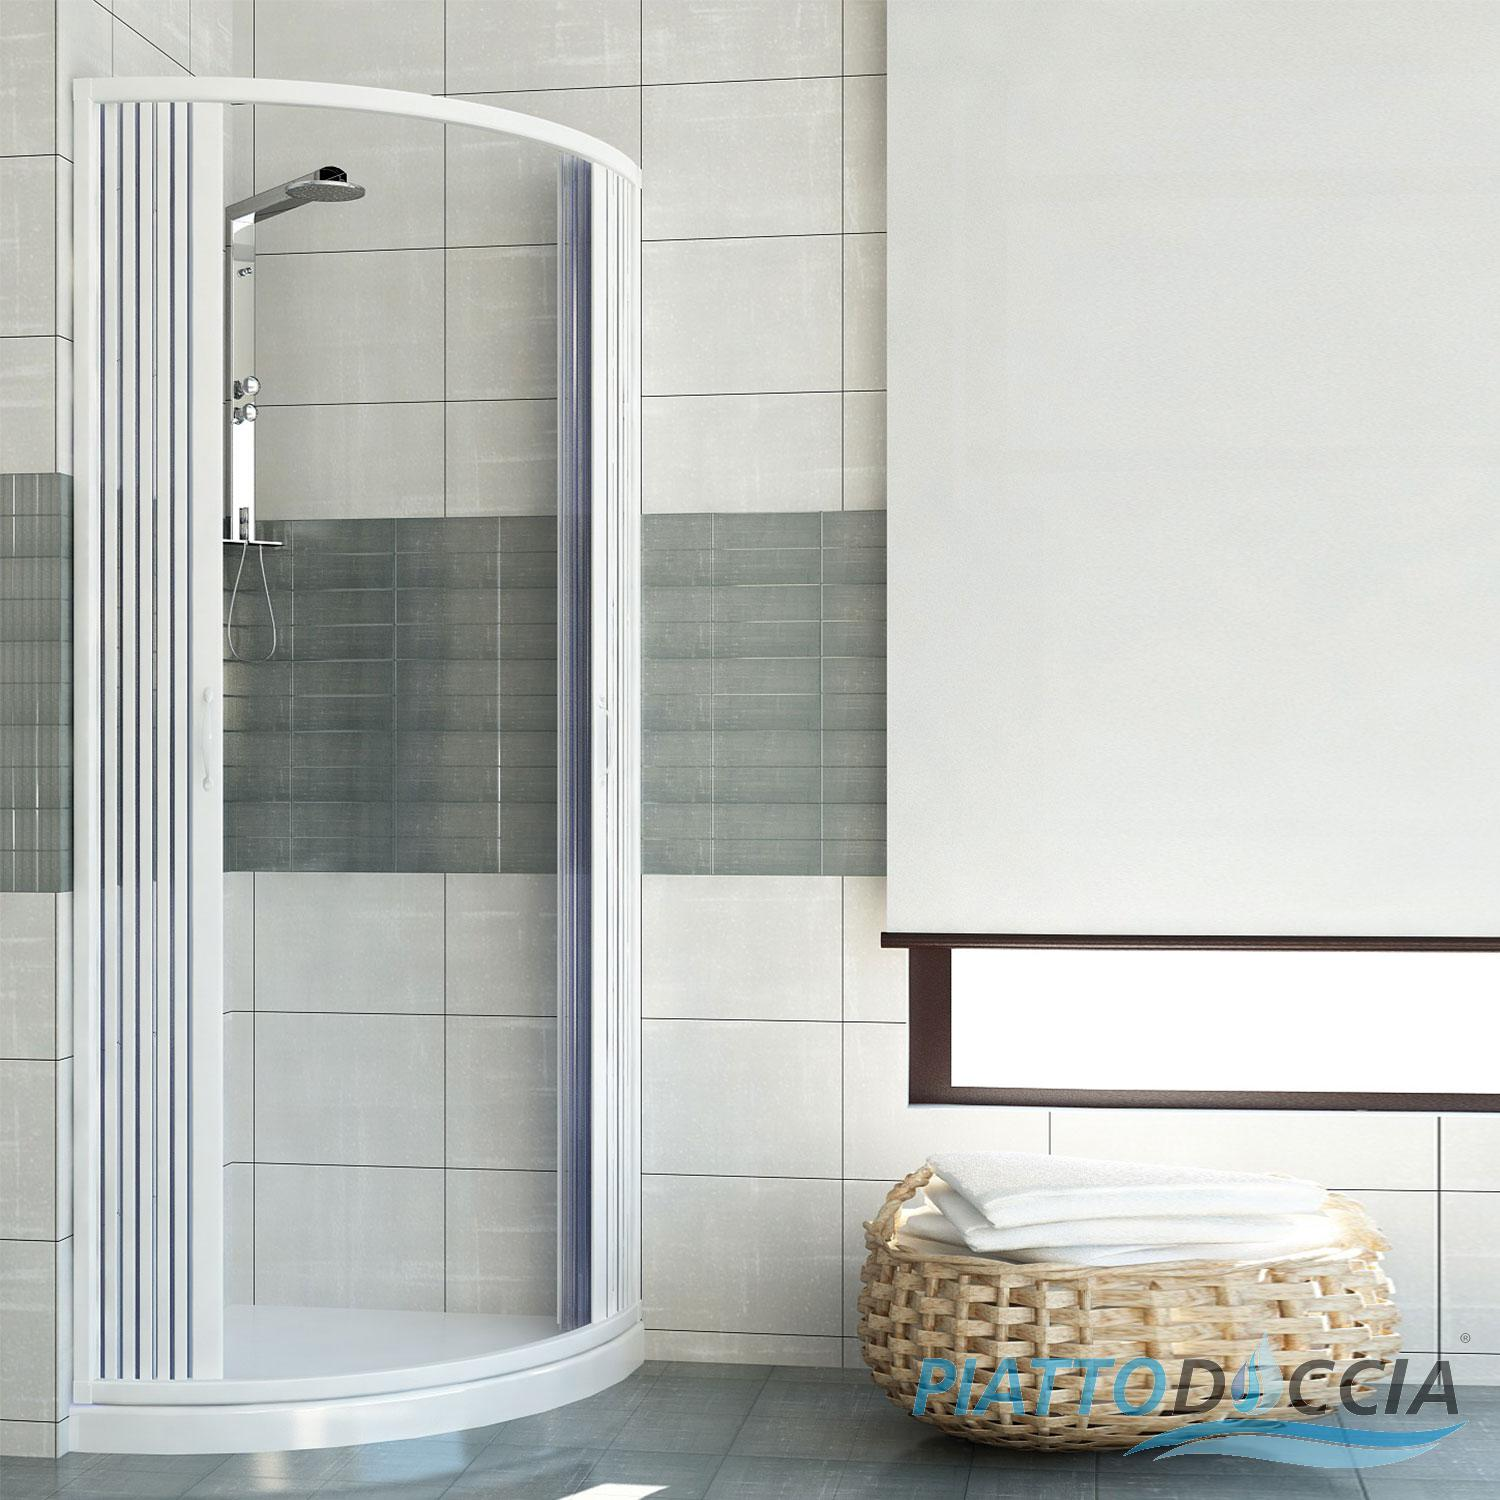 cabine de douche paroi de douche en pvc scorpione 80x80 2 portes ebay. Black Bedroom Furniture Sets. Home Design Ideas